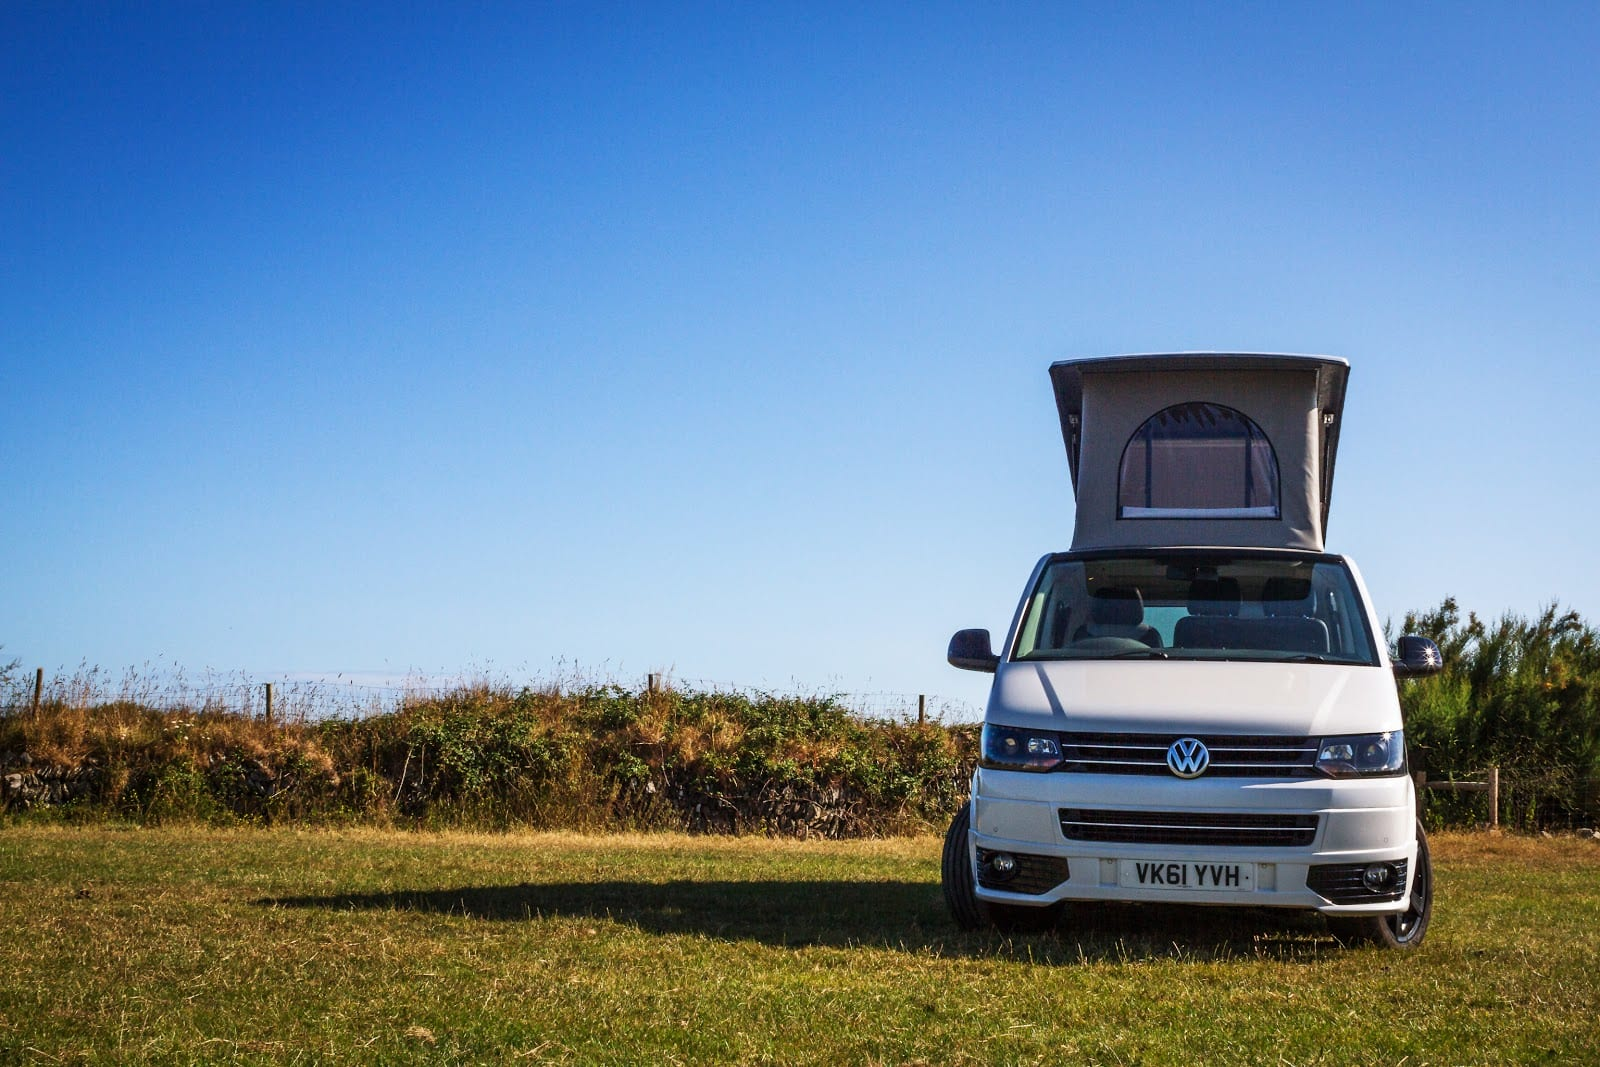 Vw T5 Vs Vw T6 What S The Best Vw Transporter For A Camper Base Campers